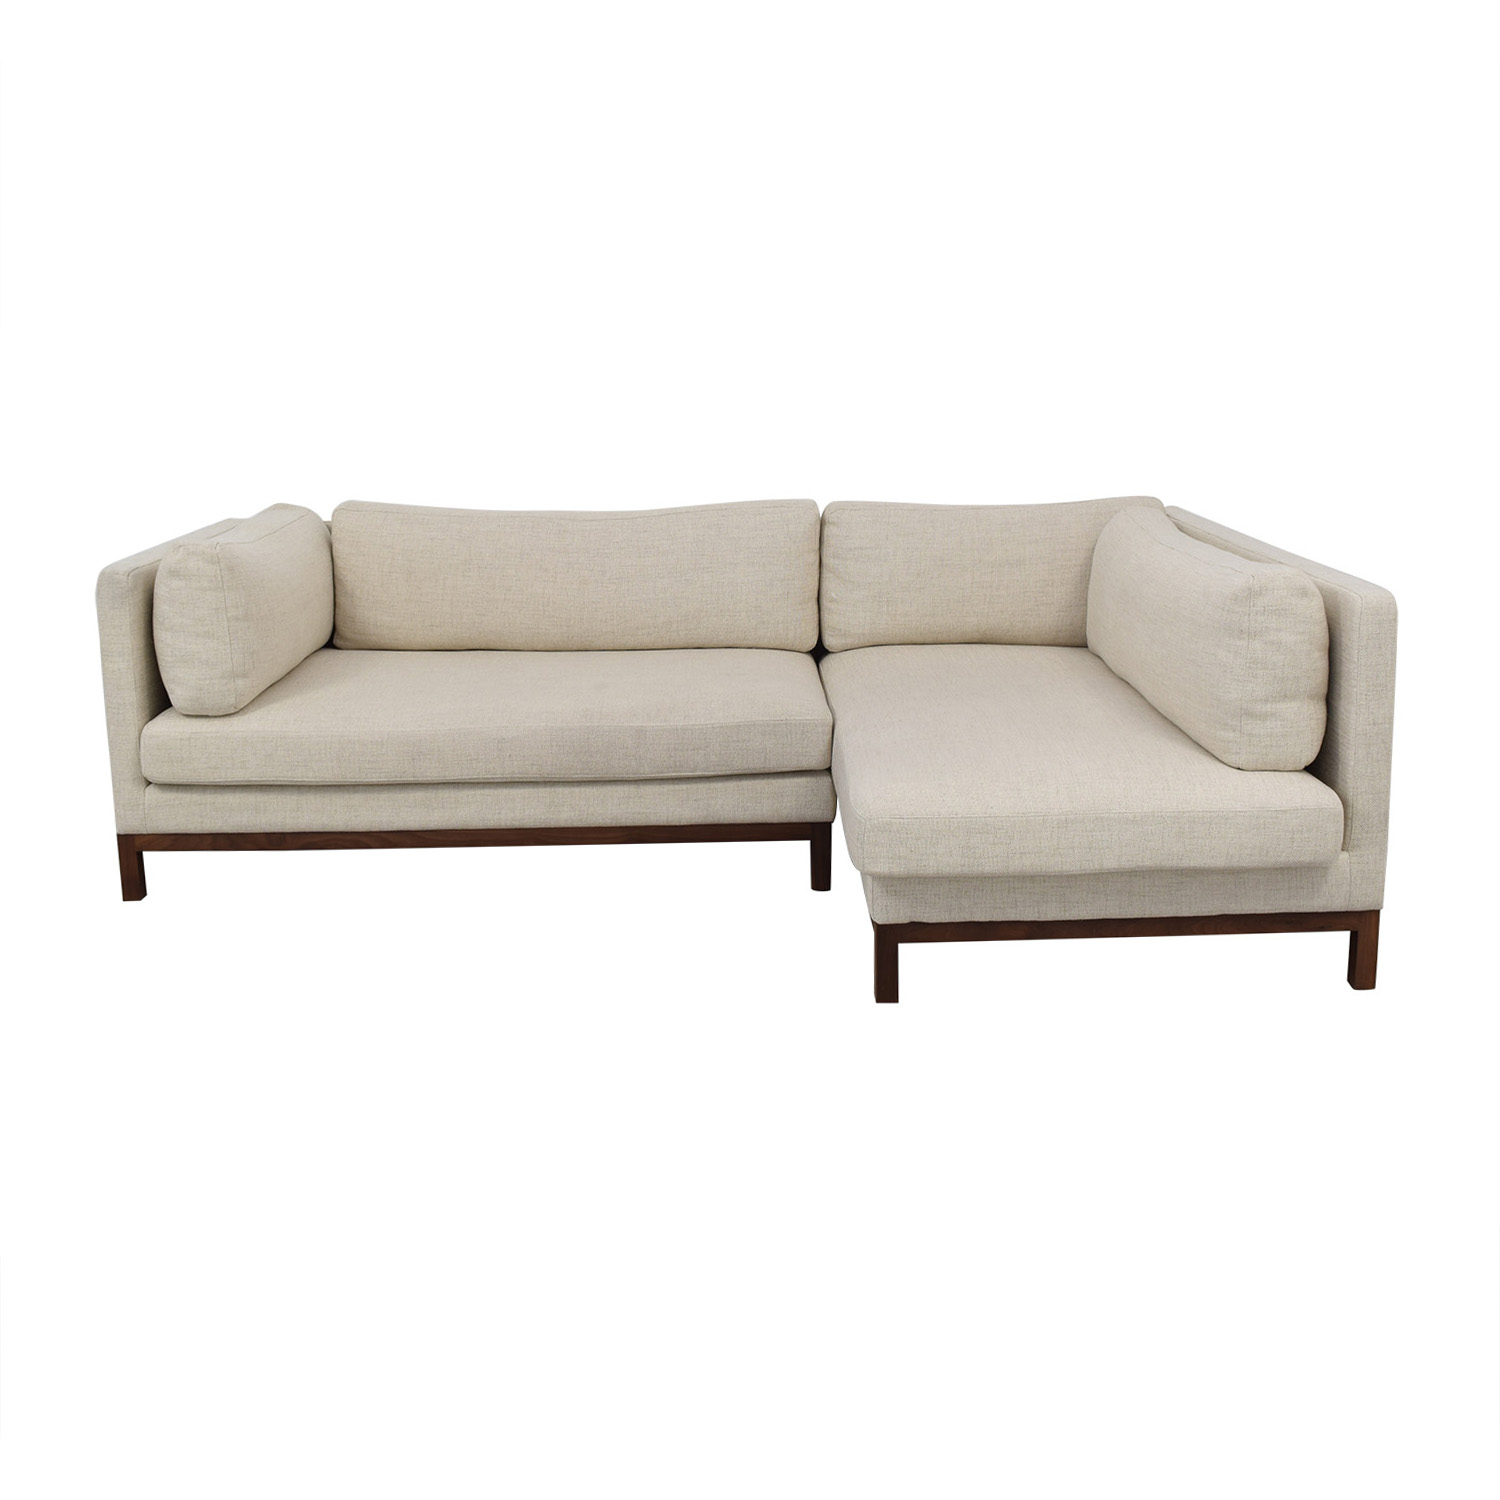 Interior Define Jasper Pebble Weave Right Chaise Sectional discount